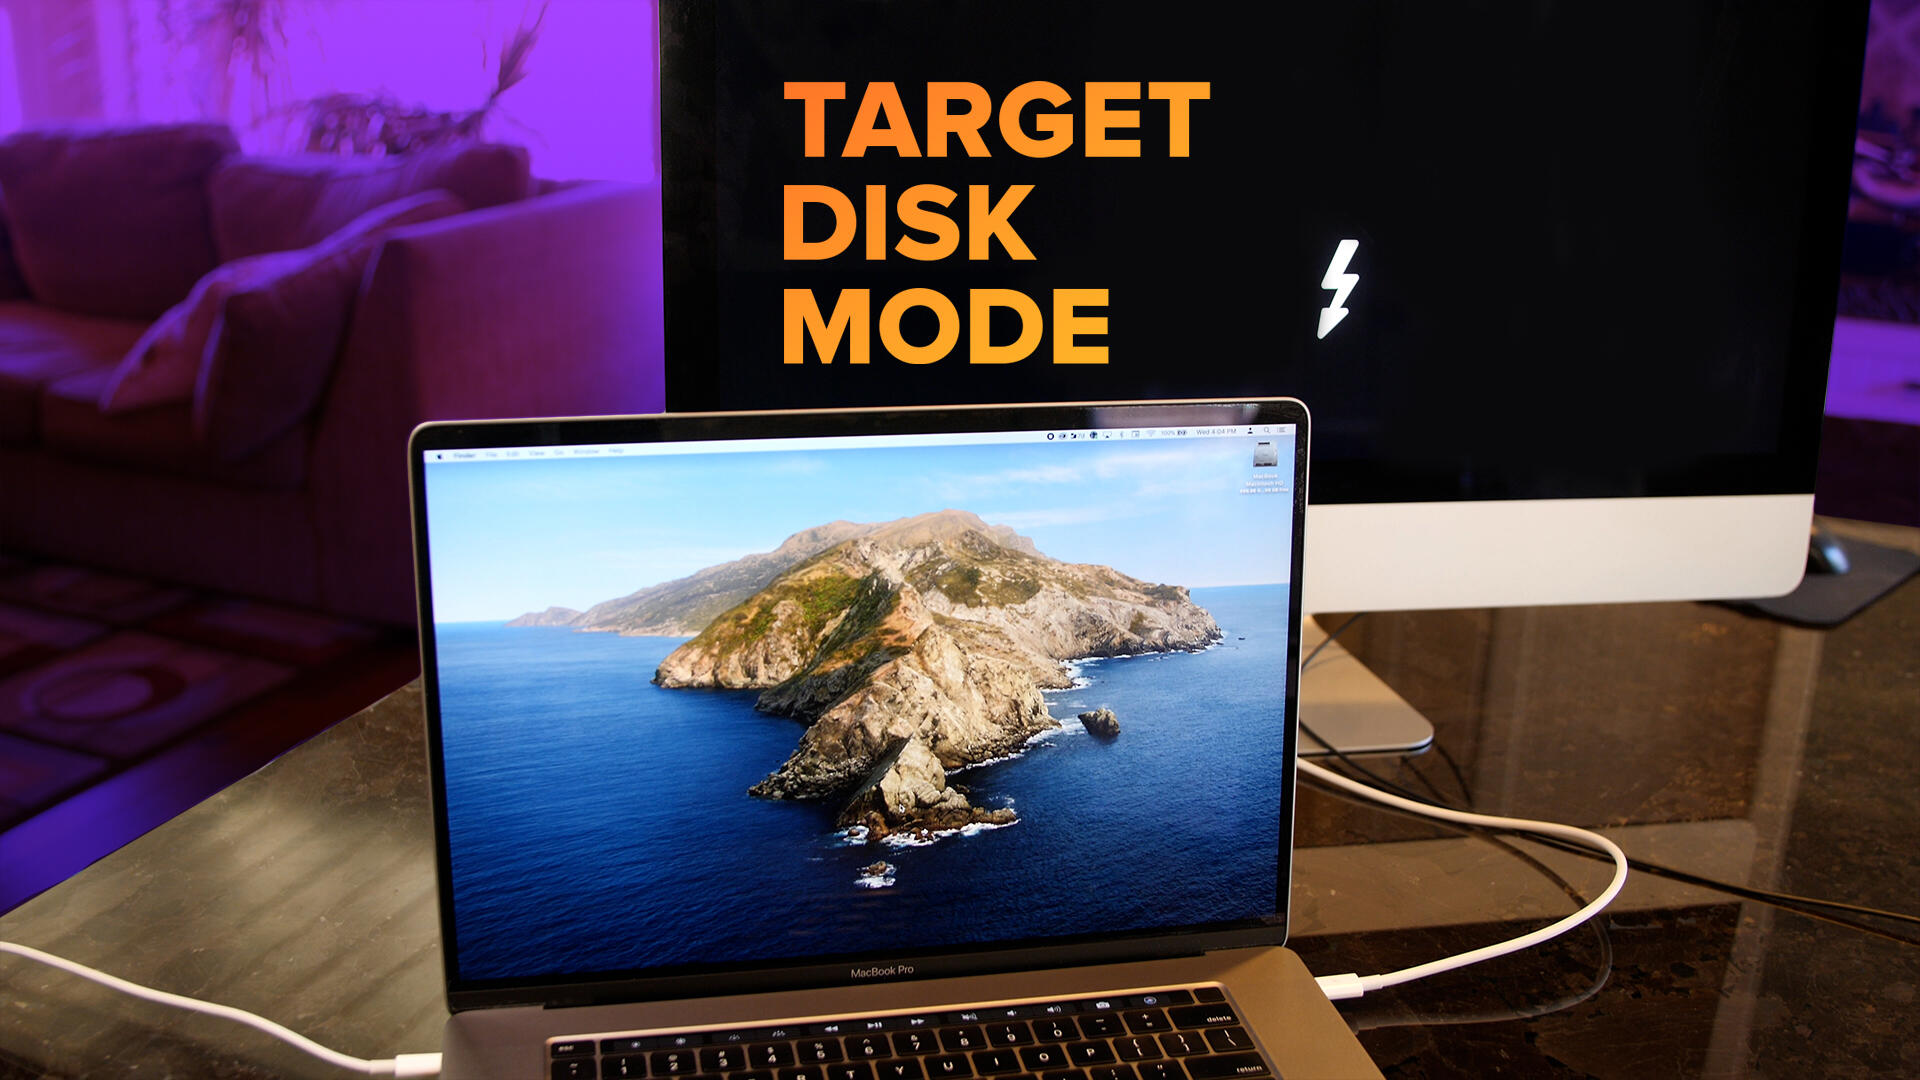 Video: Apple's Target Disk Mode: How to turn a Mac into an external hard drive